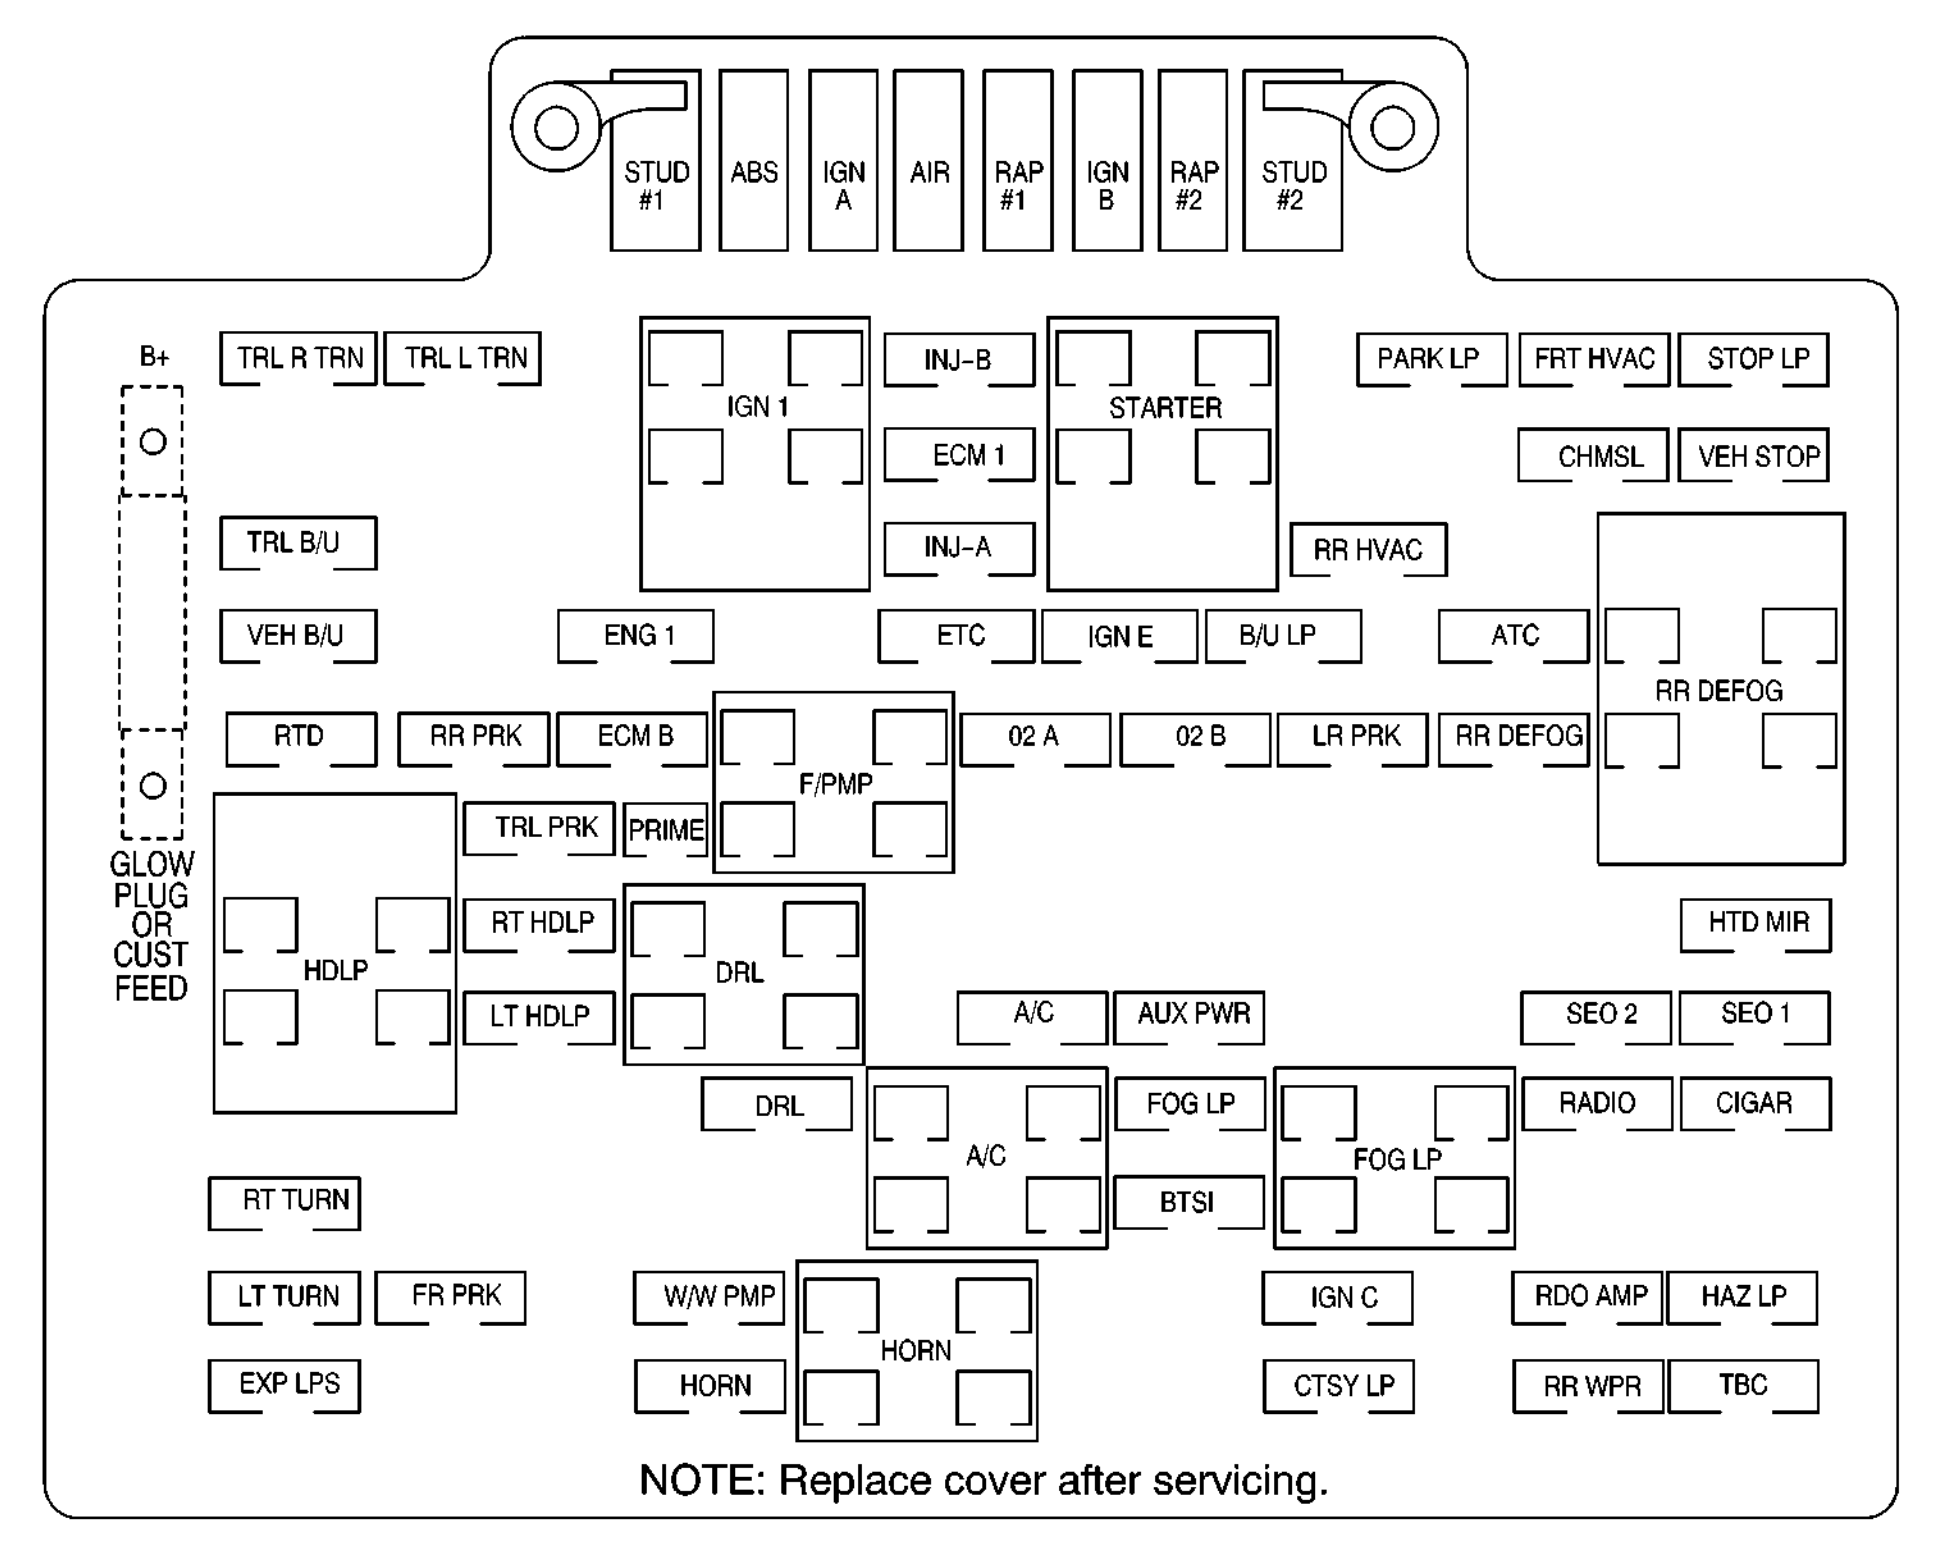 2000 tahoe fuse diagram diagram data schema mercury diagram 2000 tahoe fuse box wiring diagram forward [ 1954 x 1554 Pixel ]